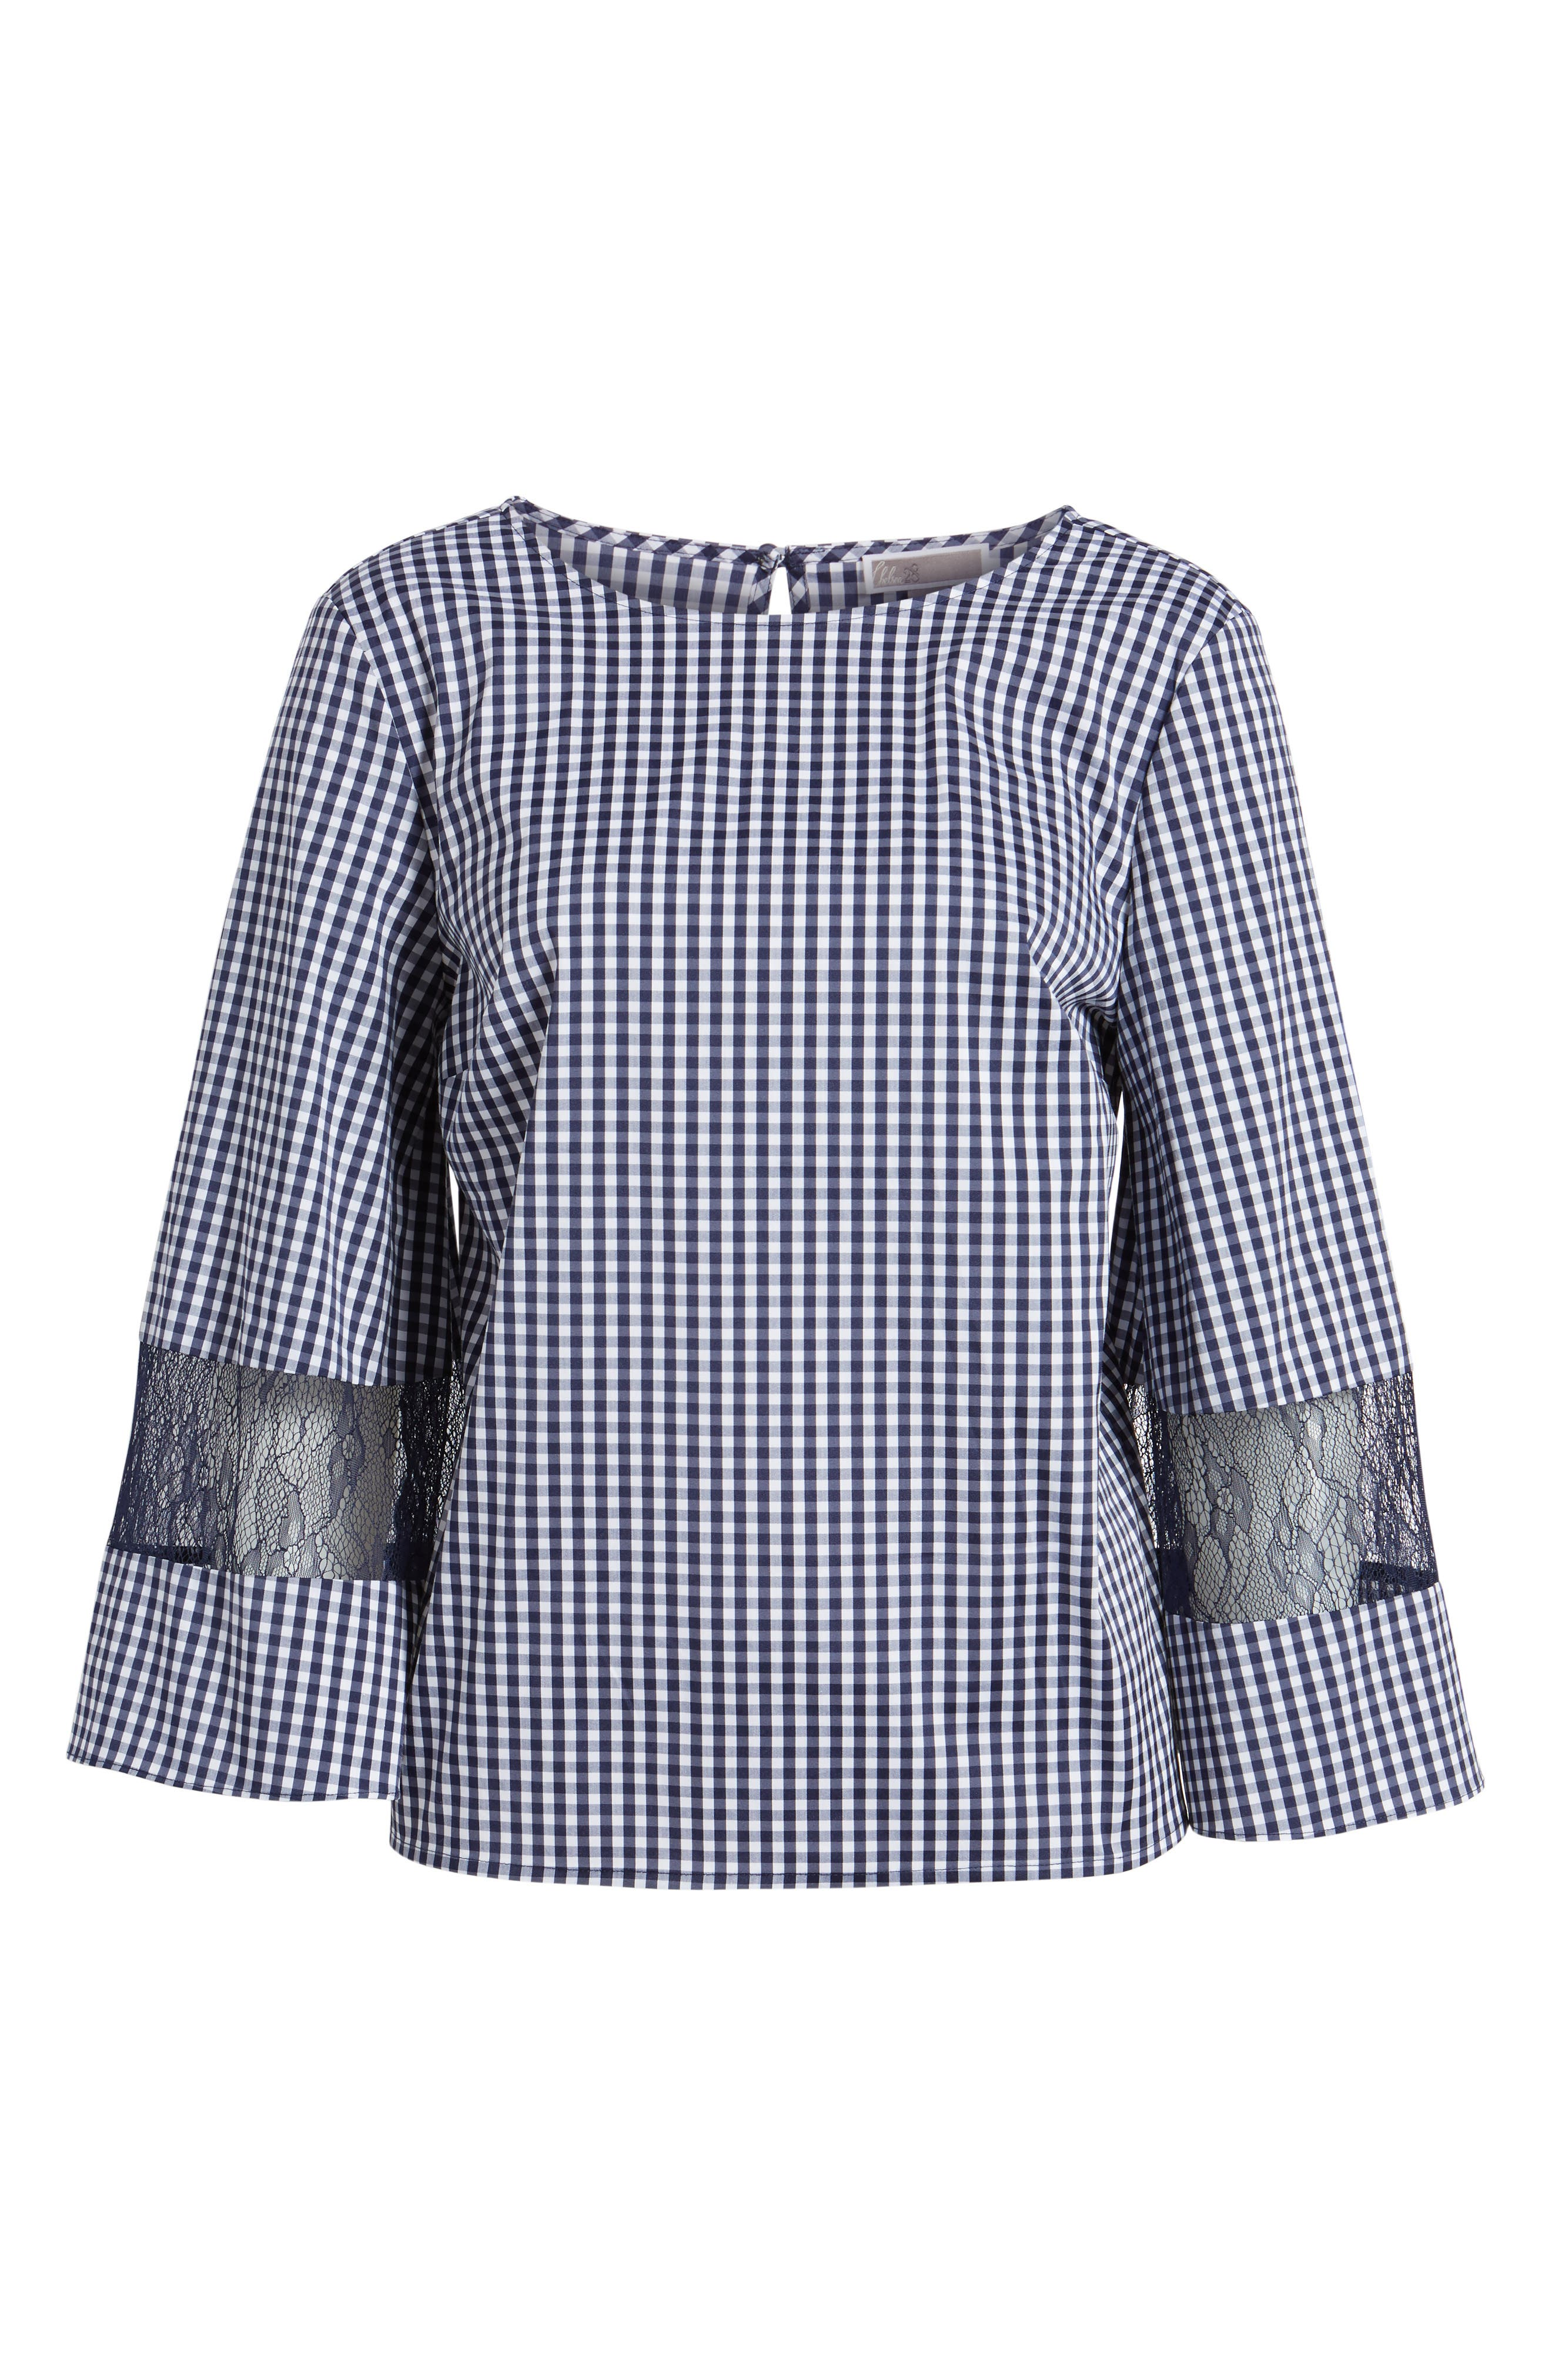 Gingham & Lace Blouse,                             Alternate thumbnail 6, color,                             Navy Evening- White Gingham